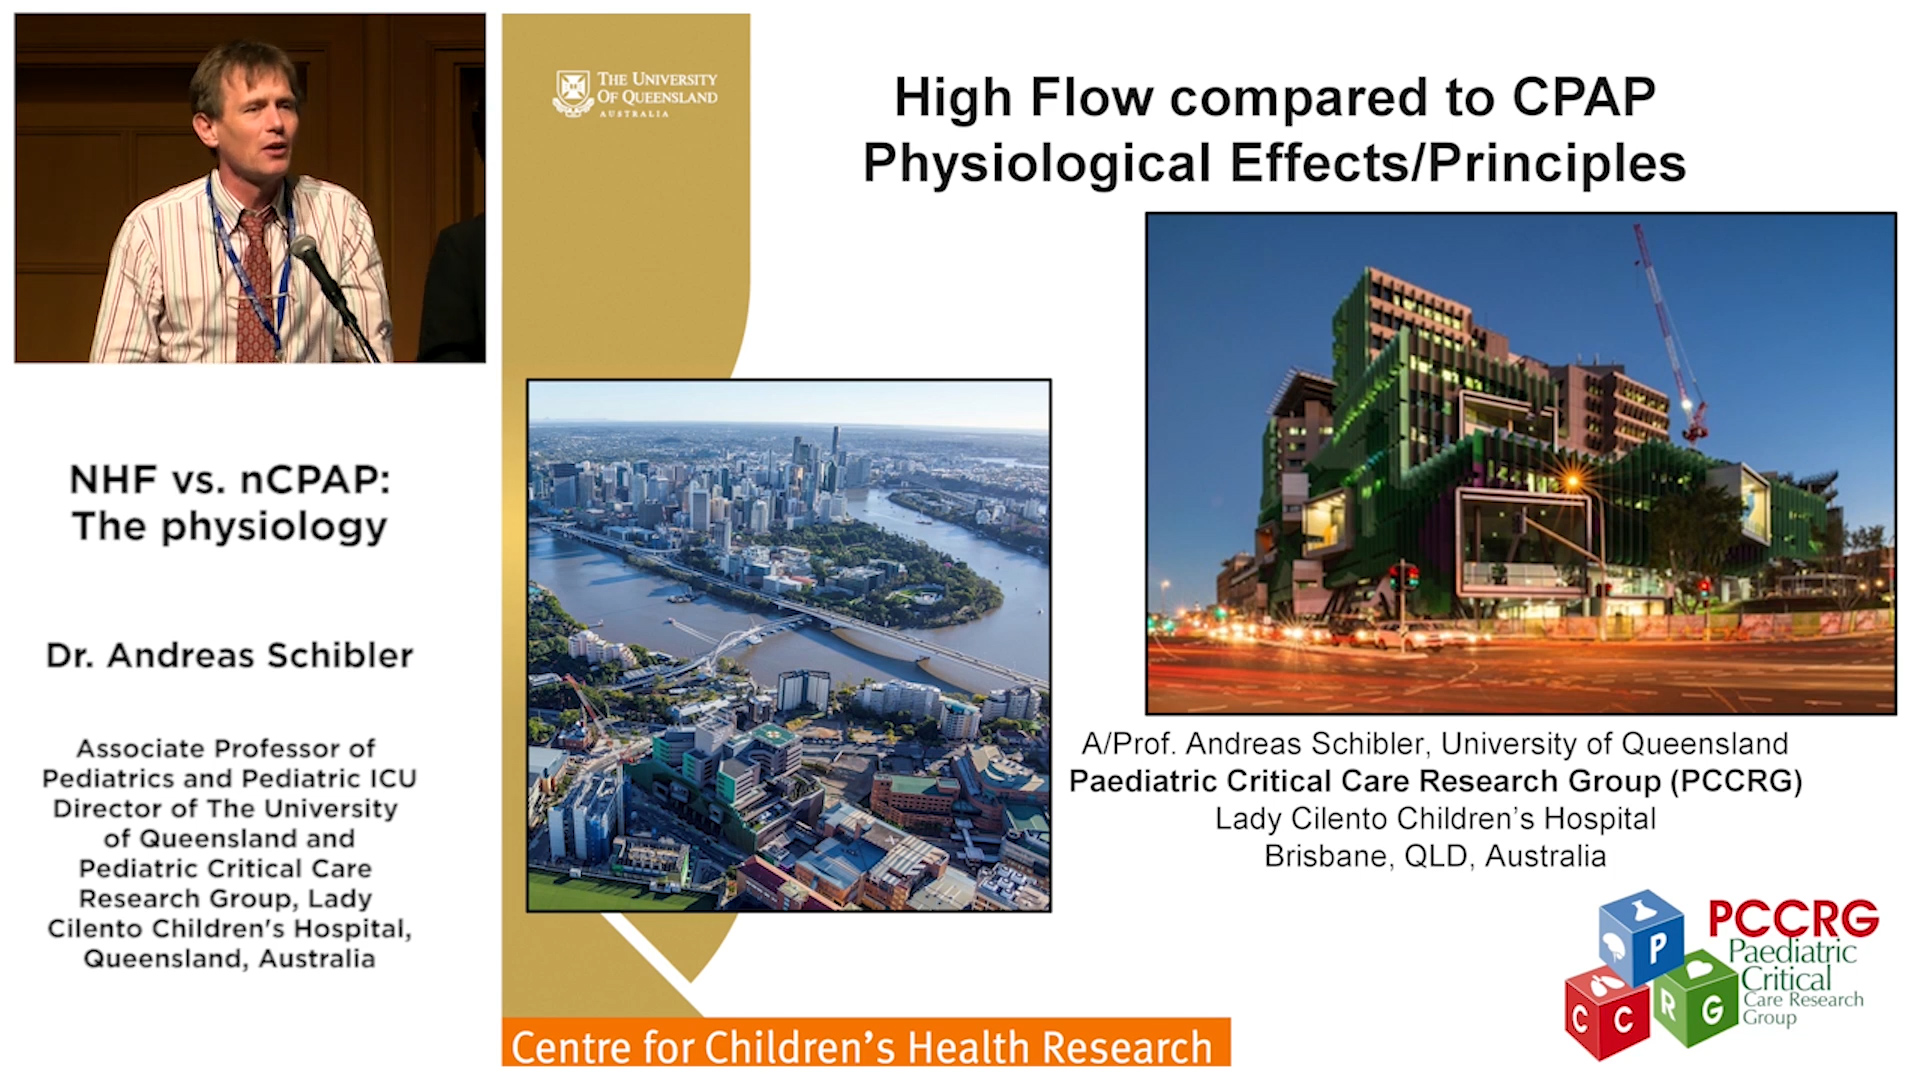 NHF vs. nCPAP: The physiology - Dr Andreas Schibler